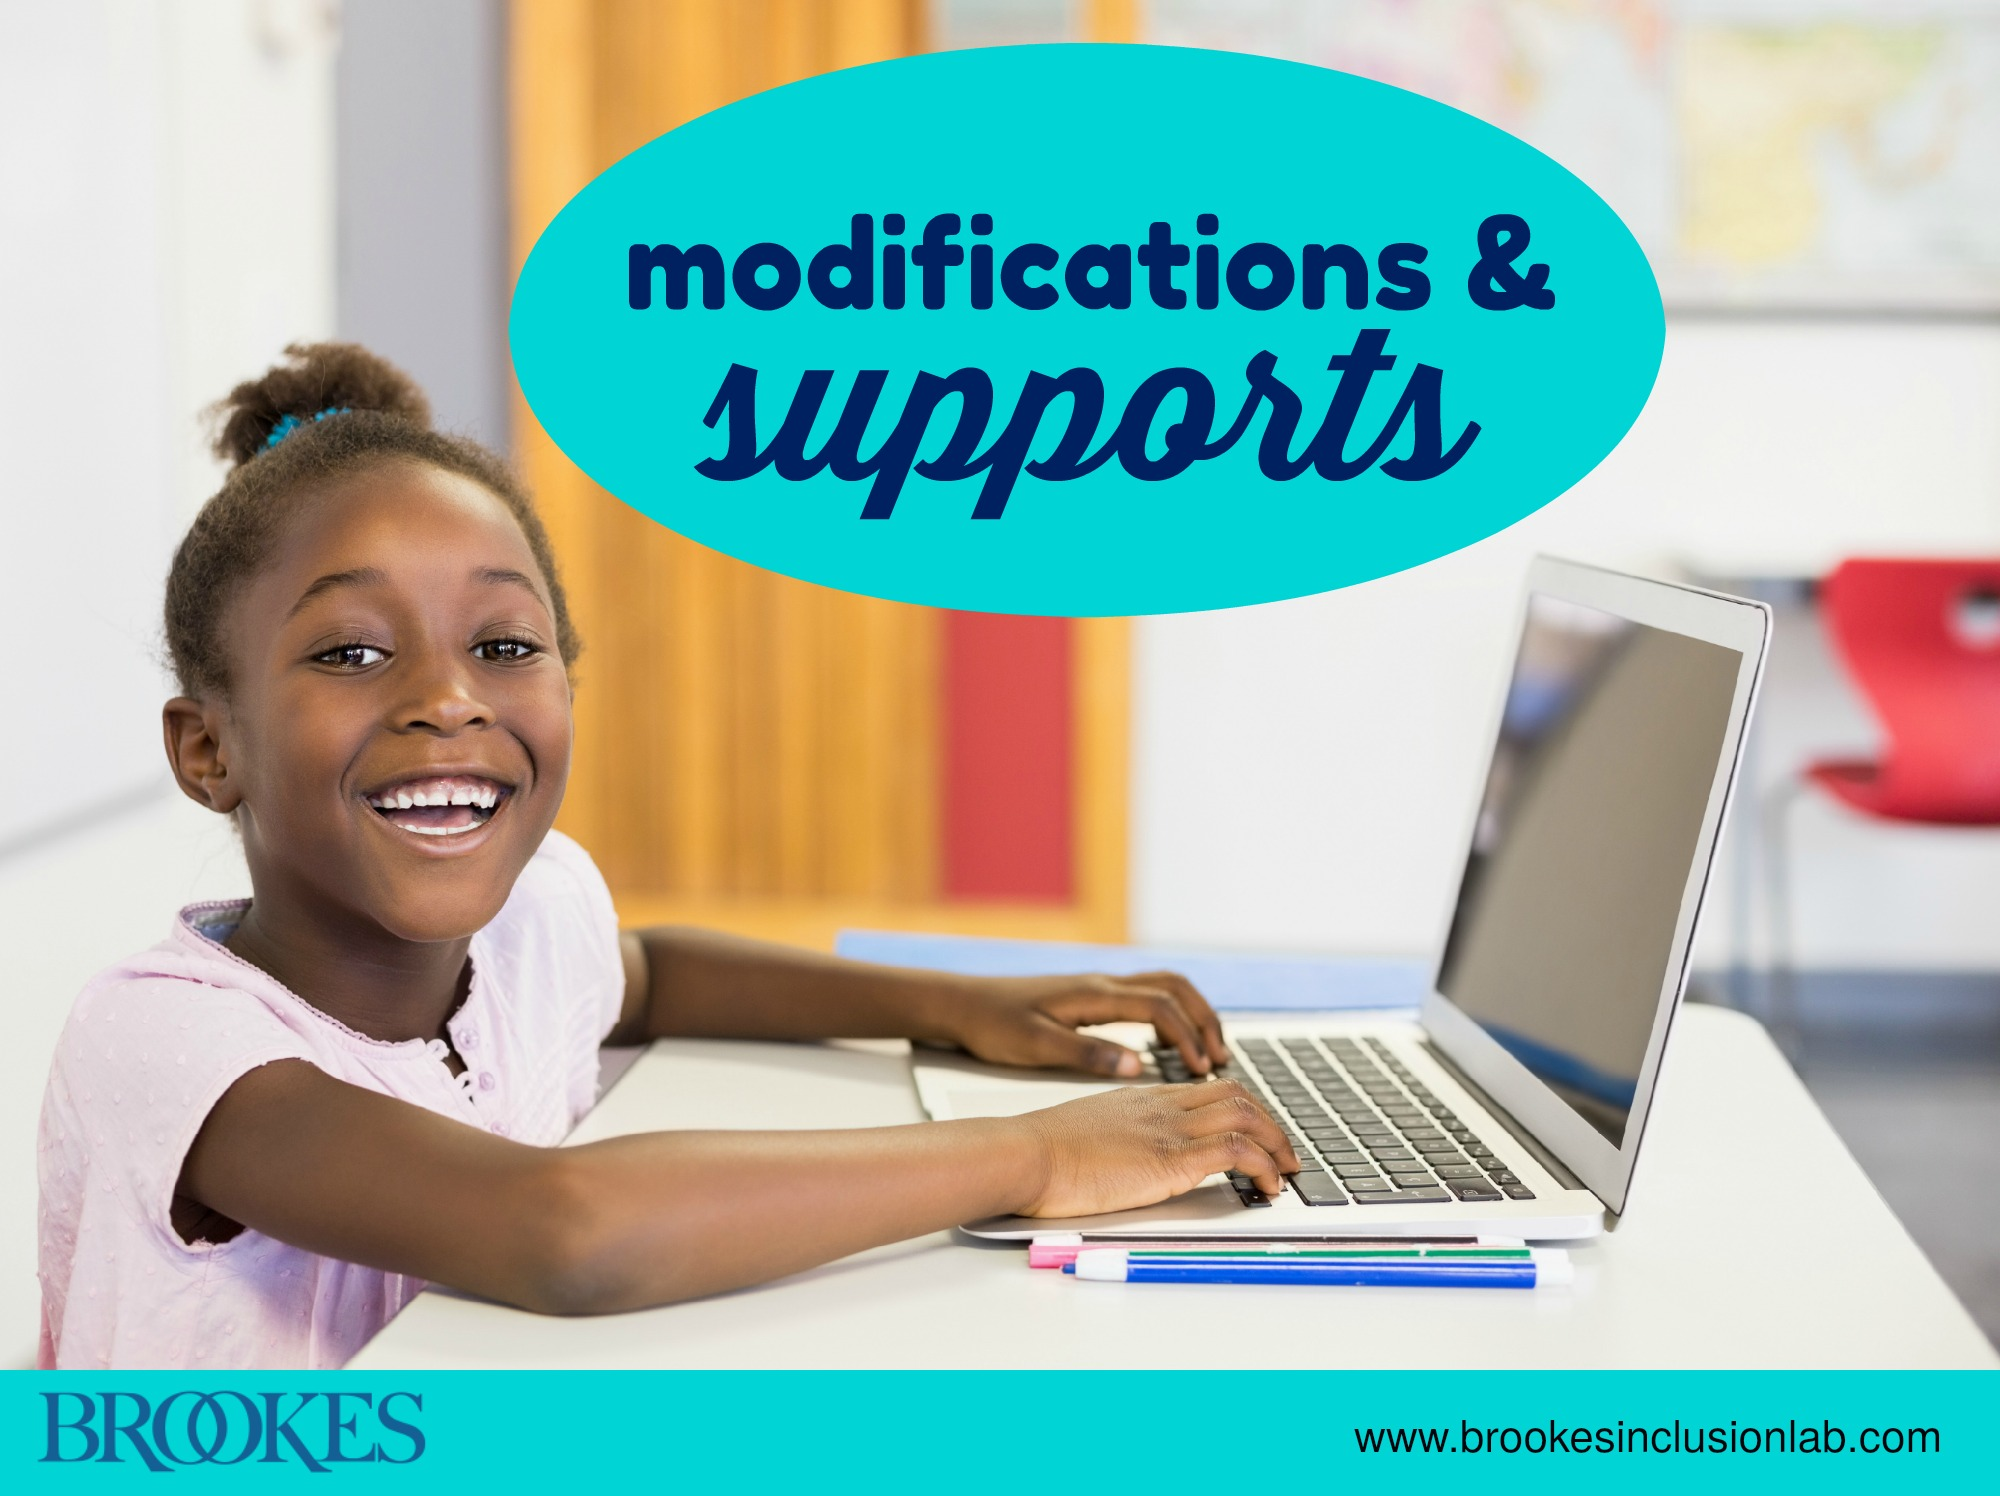 Modifications and Supports